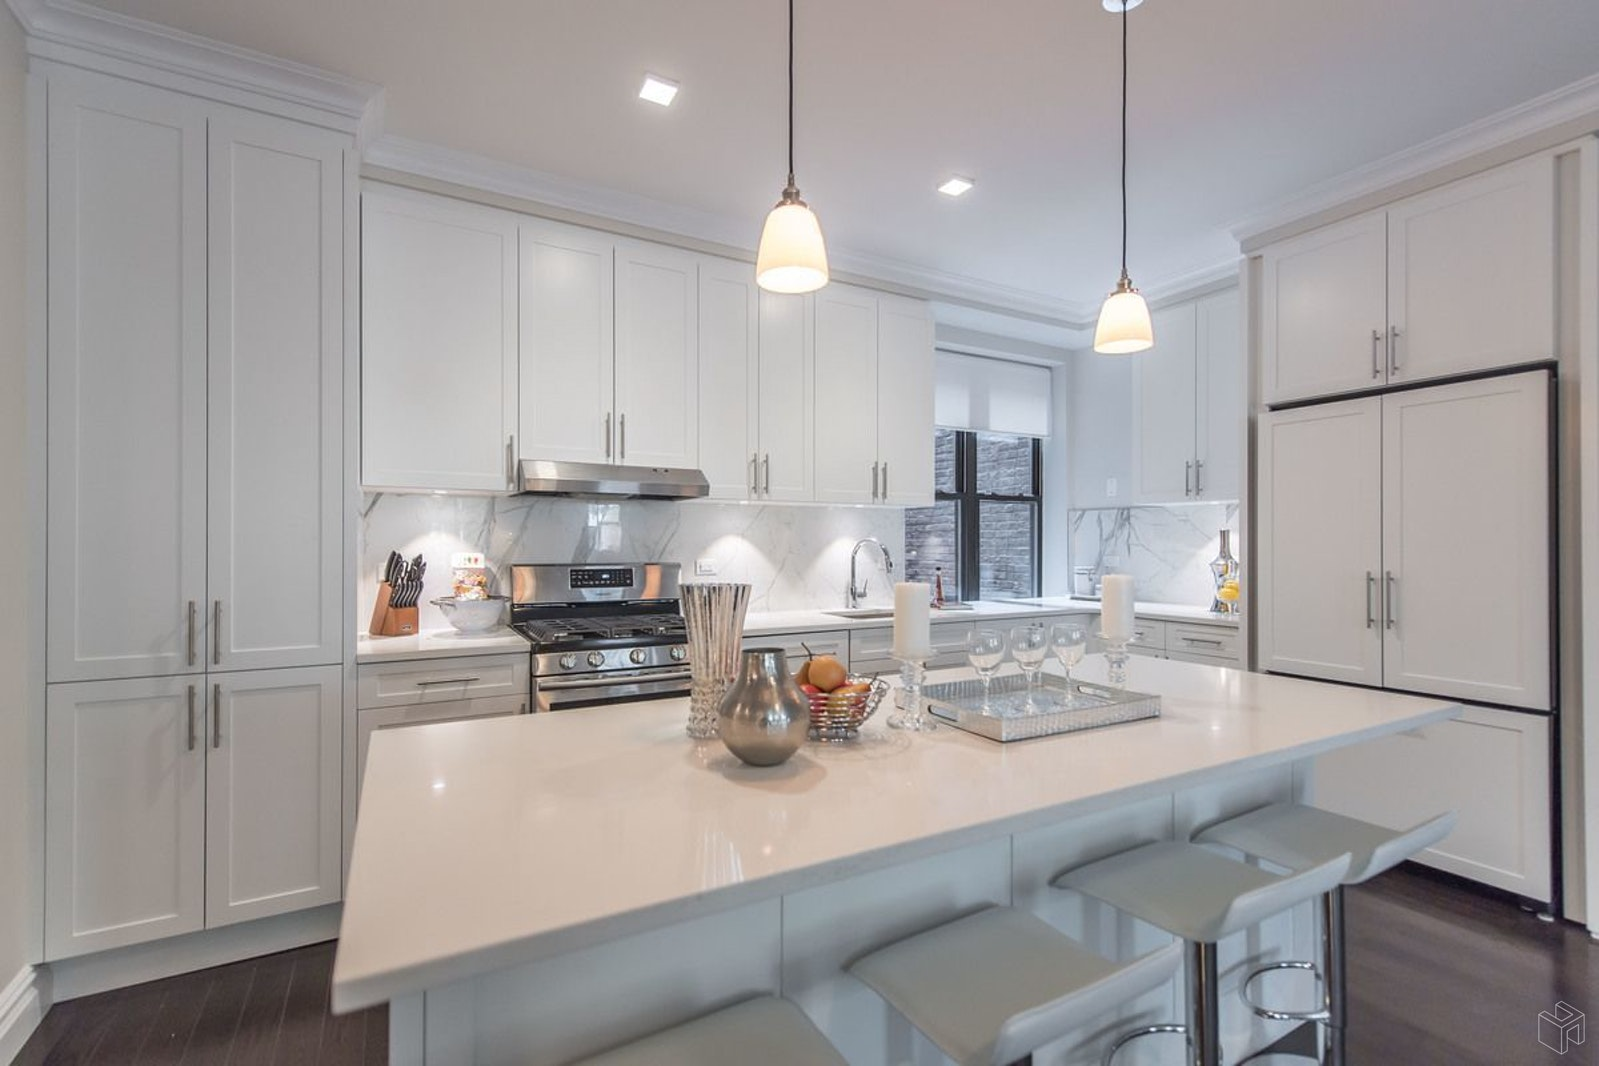 526 West 111th Street 2cd, Upper West Side, NYC, 10025, Price Not Disclosed, Rented Property, Halstead Real Estate, Photo 2